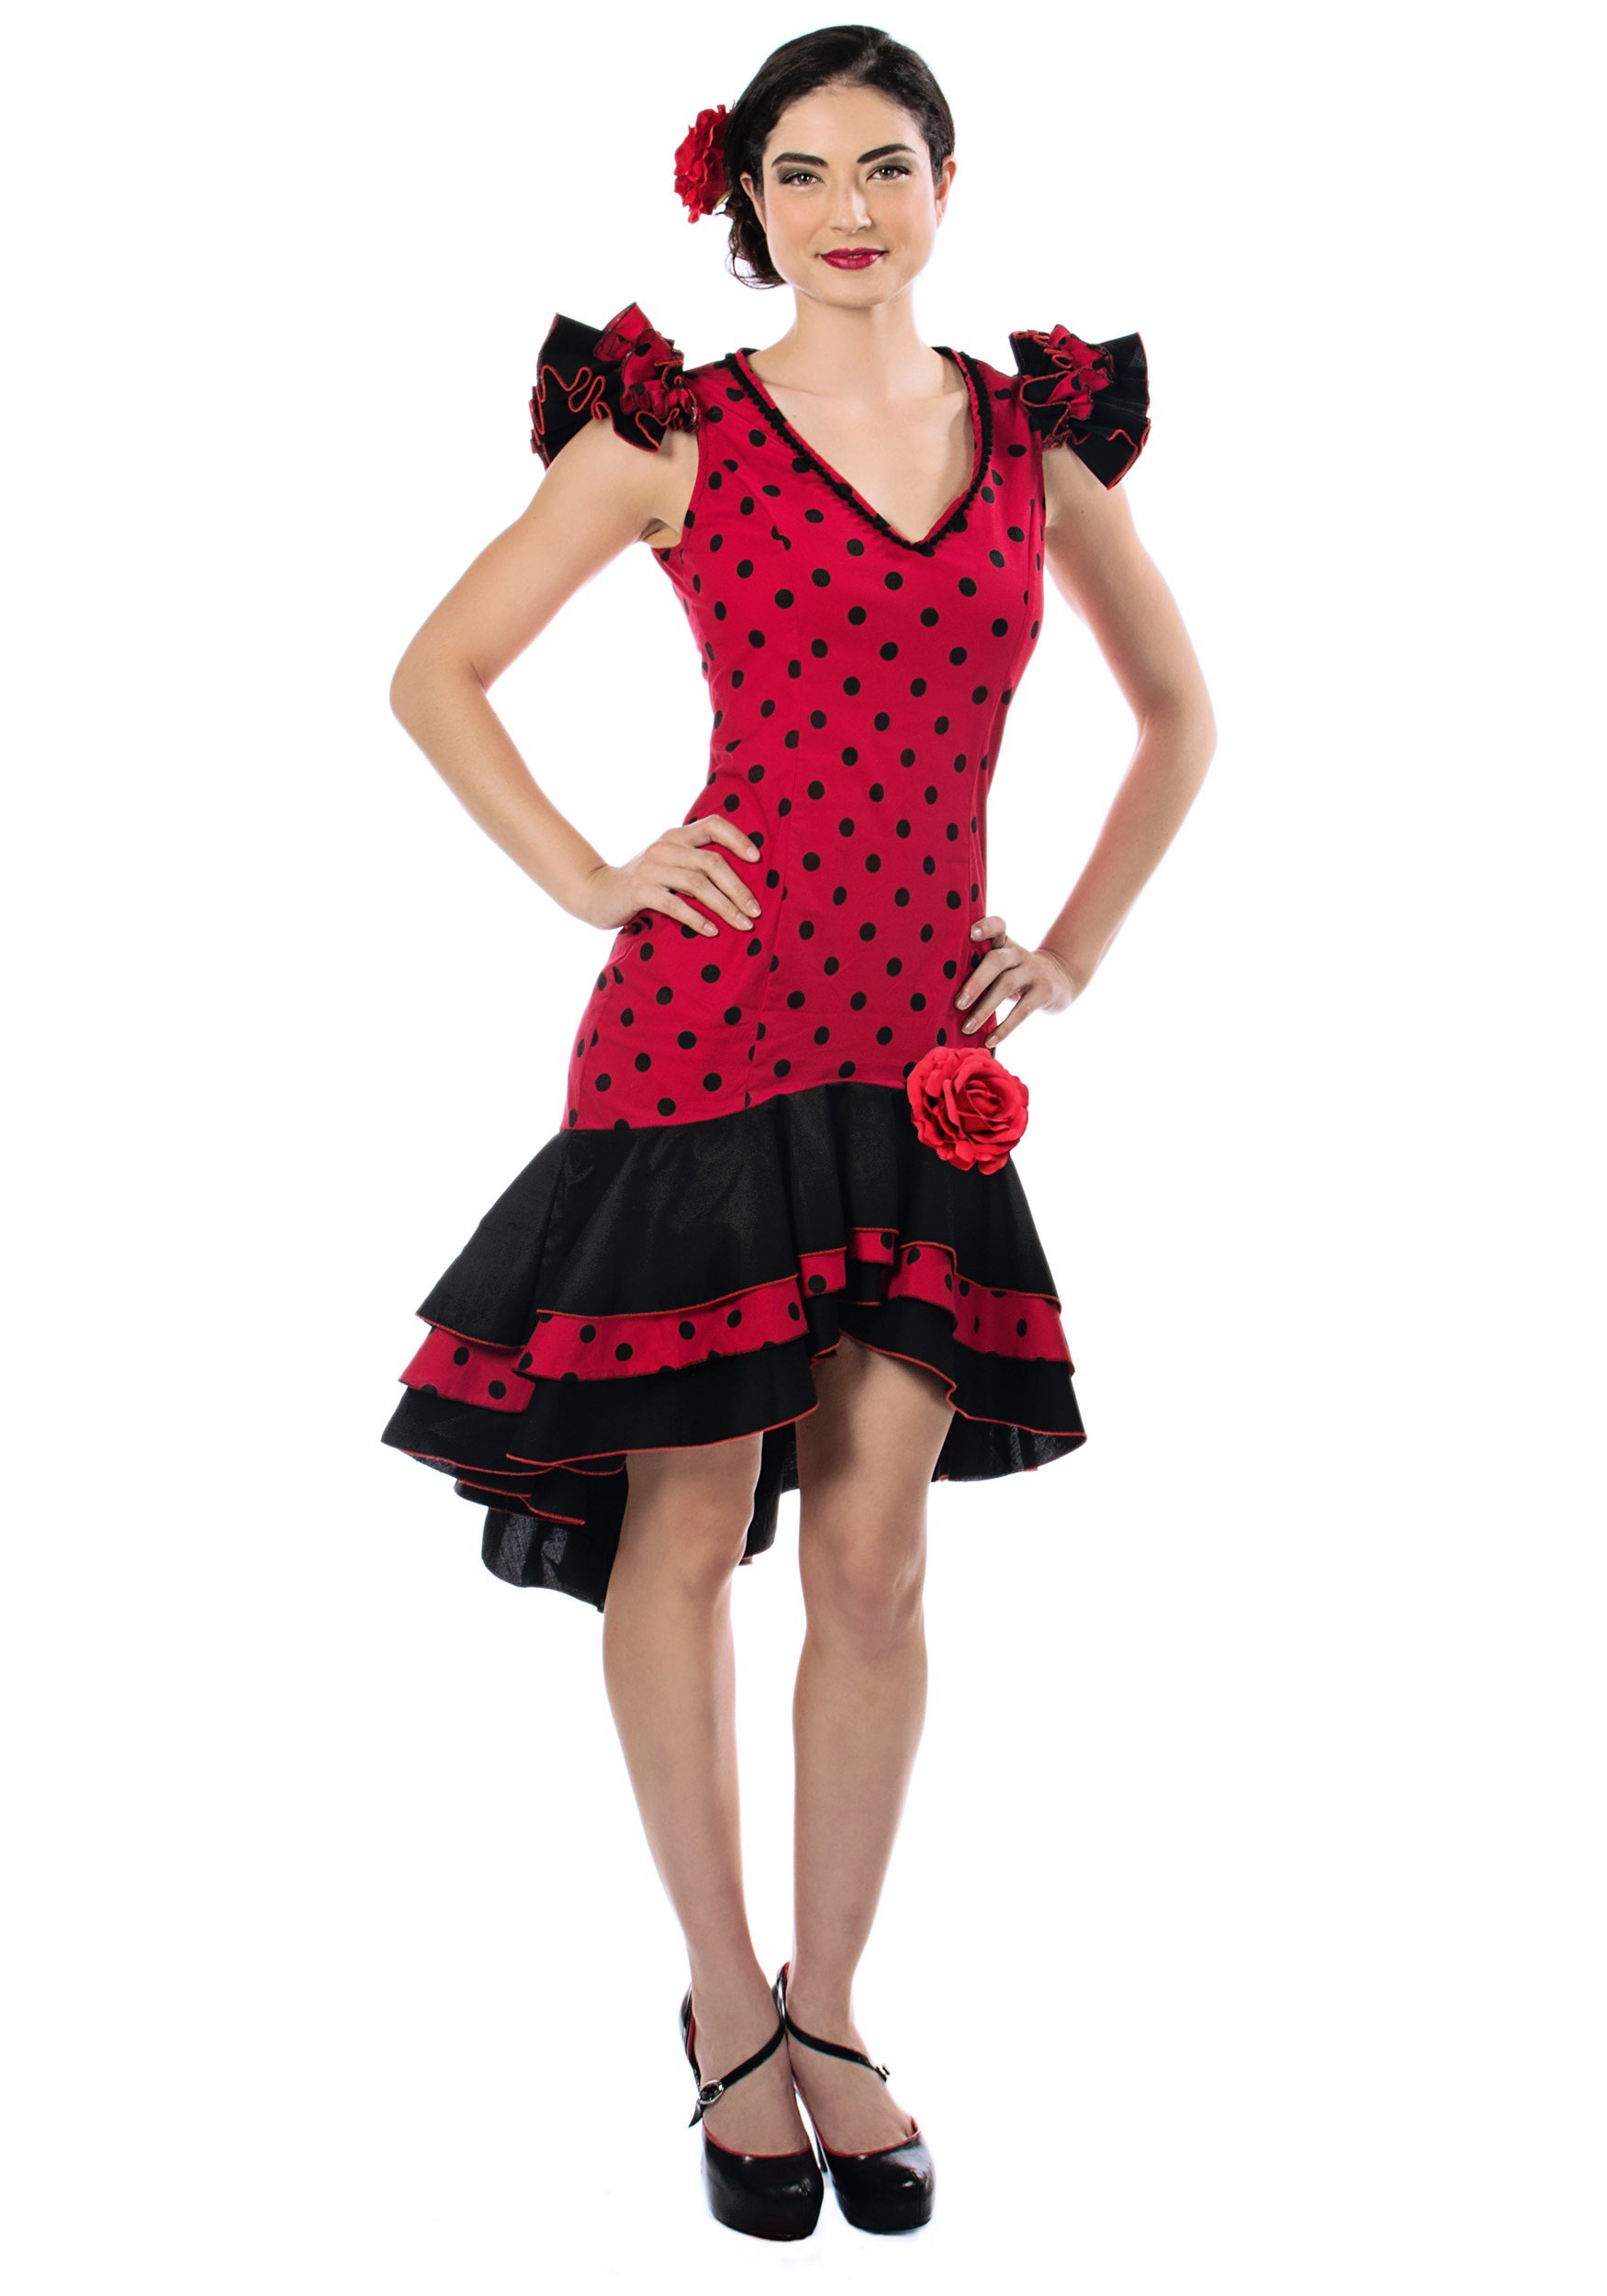 Women's Spanish Dancer Costume